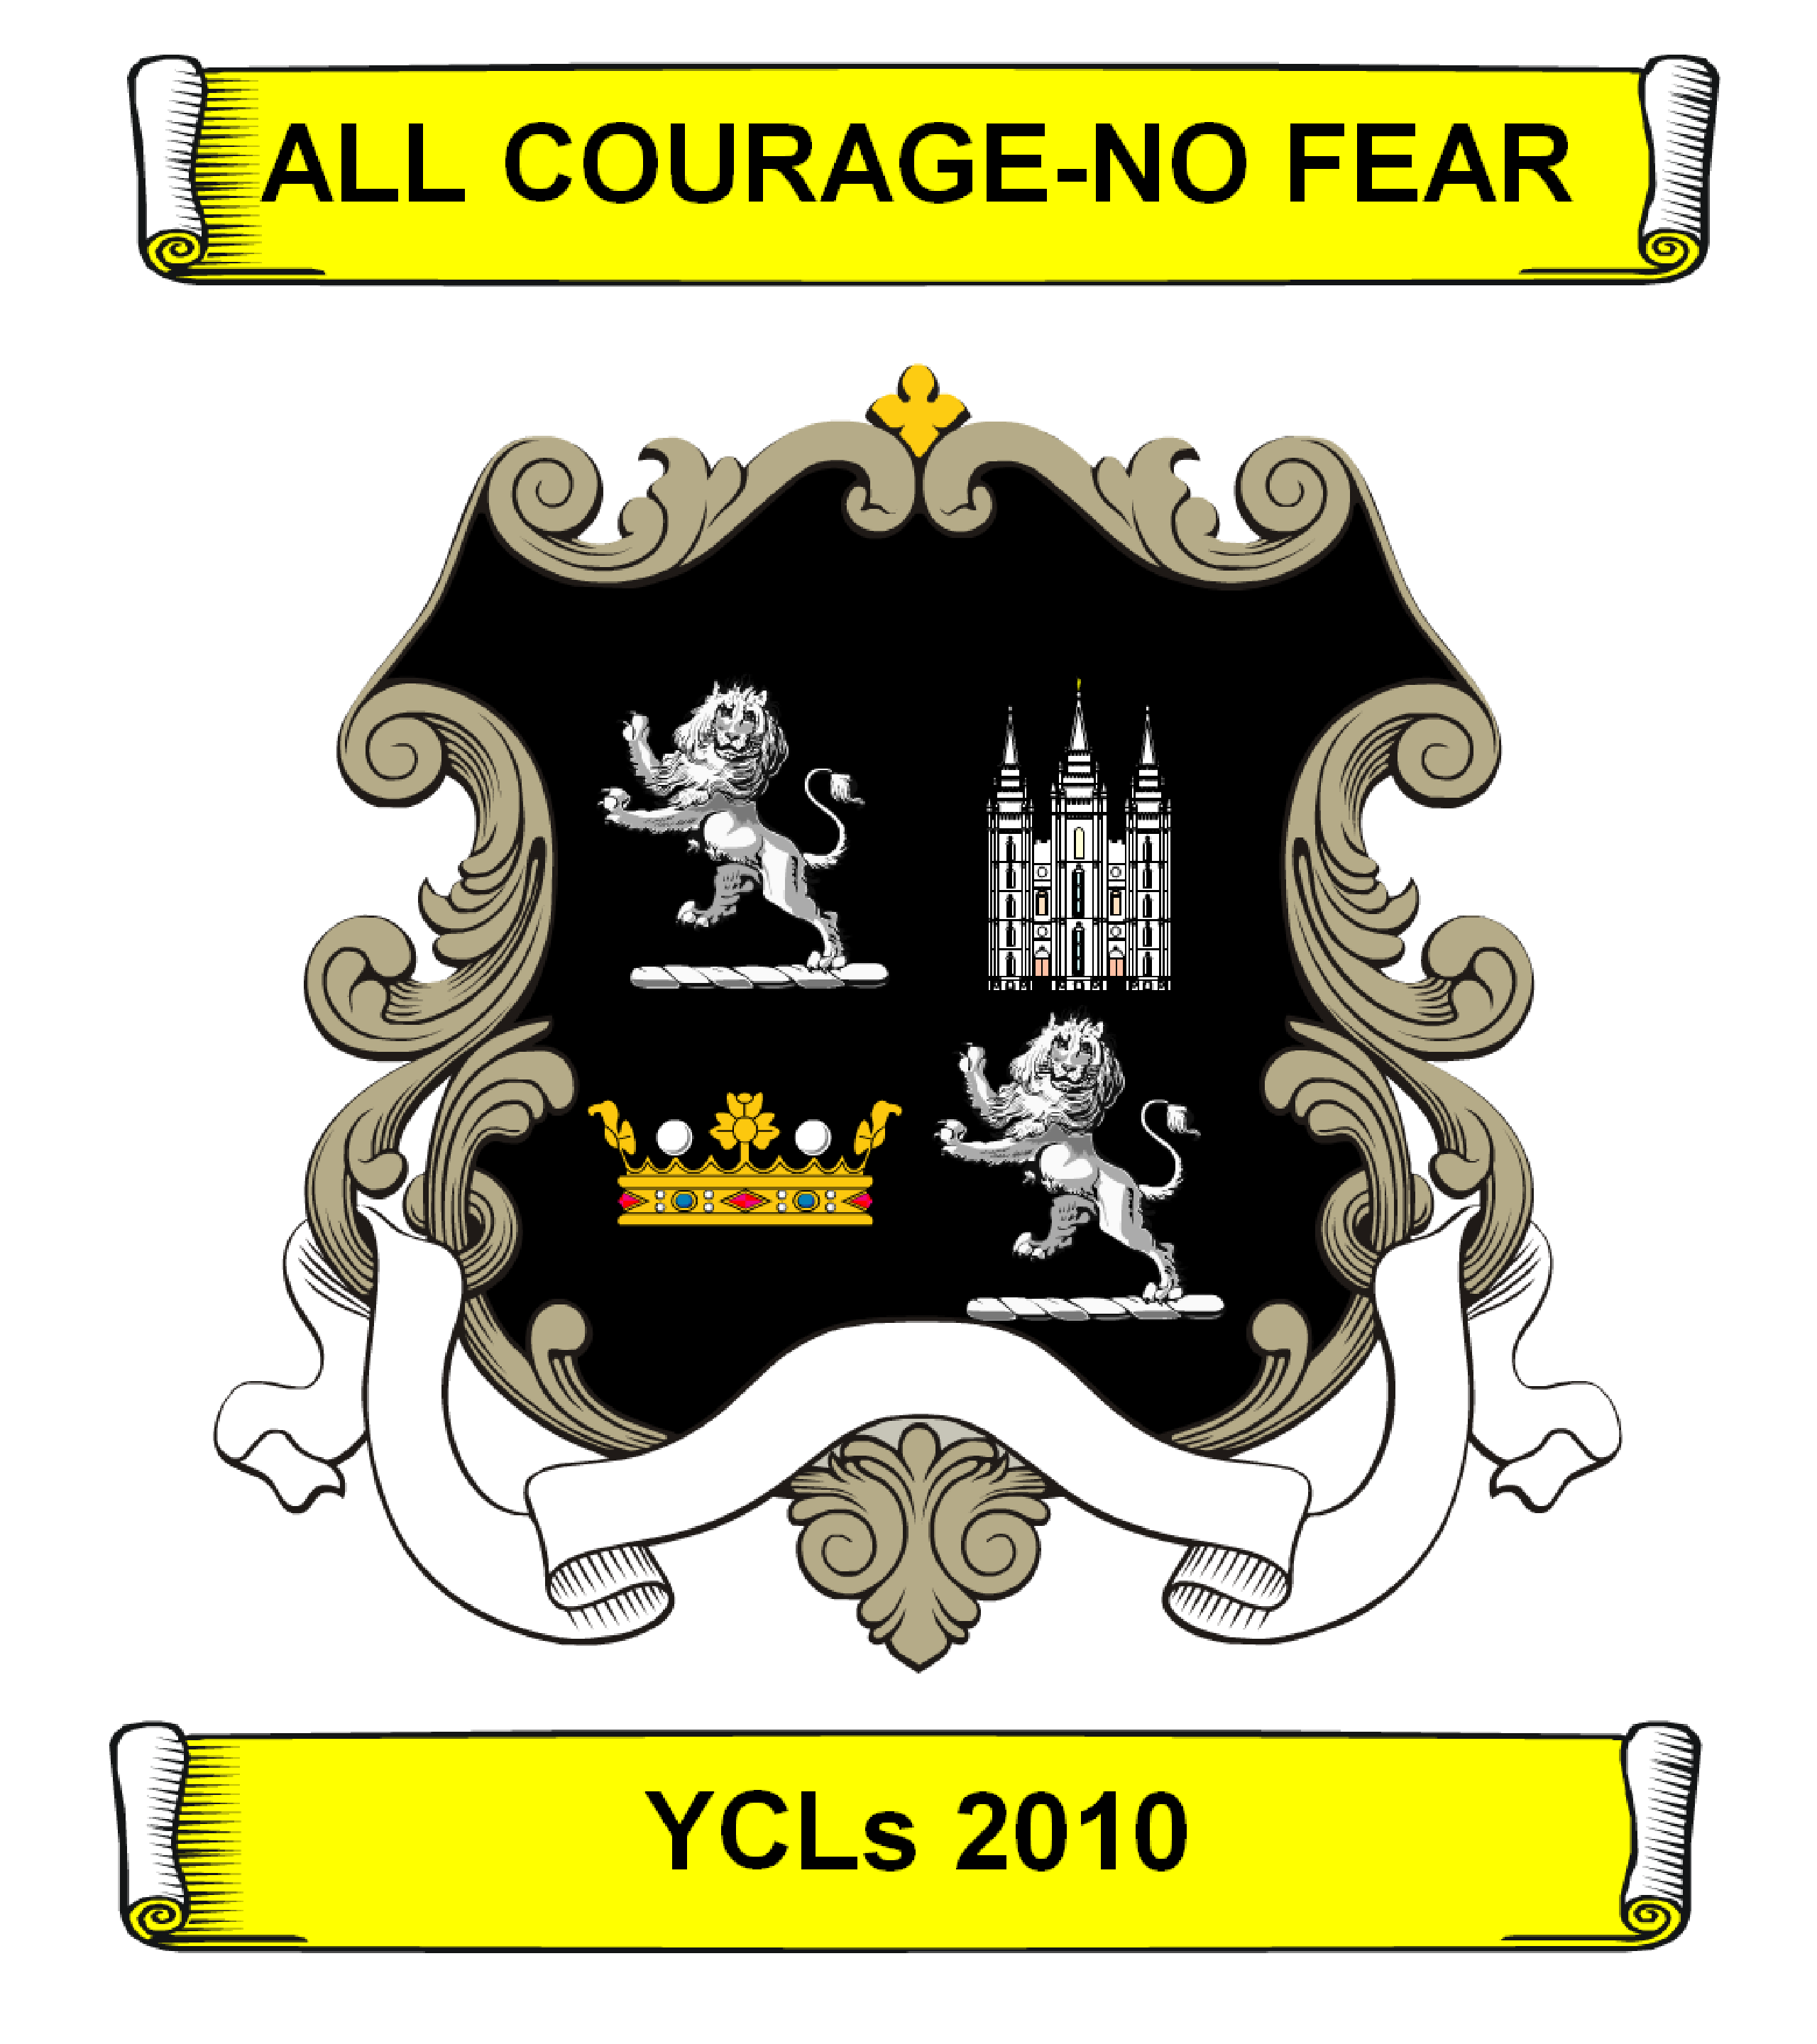 create your family s coat of arms based on your values and things